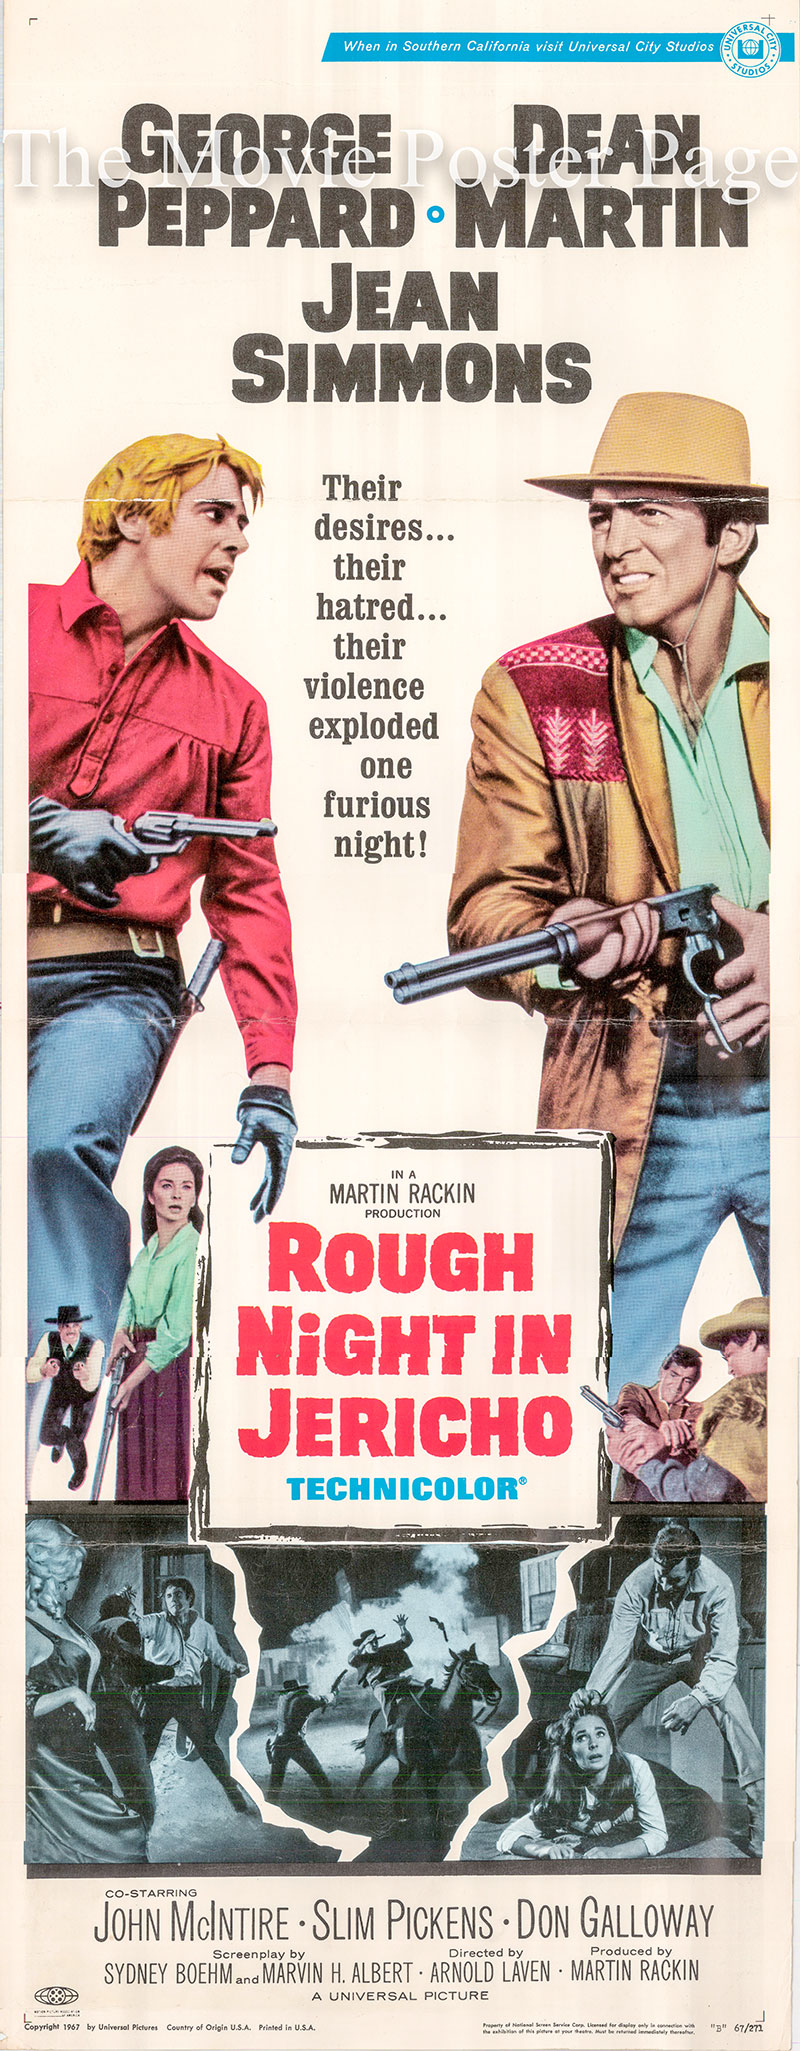 Pictured is a US insert poster for the 1967 Arnold Laven film Rough Night in Jericho starring Dean Martrtin as Alex Flood.